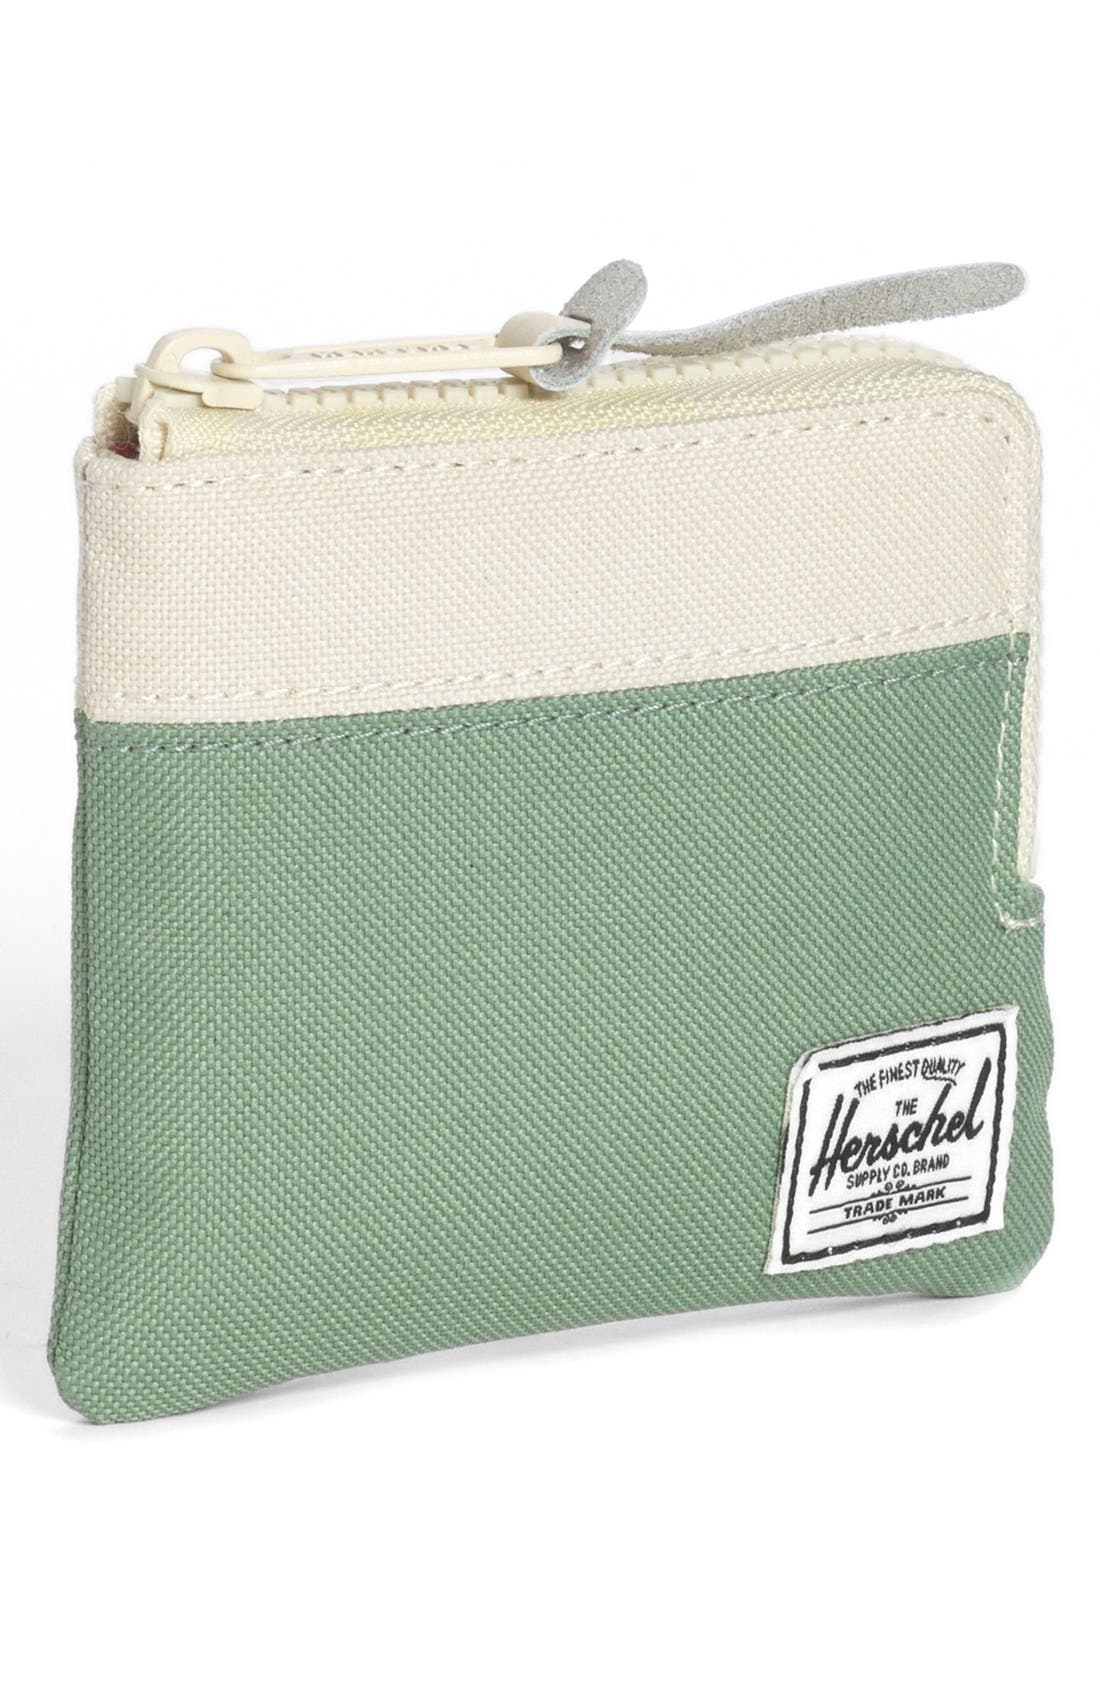 Main Image - Herschel Supply Co. 'Johnny - Rad Cars with Rad Surfboards Collection' Zip Wallet